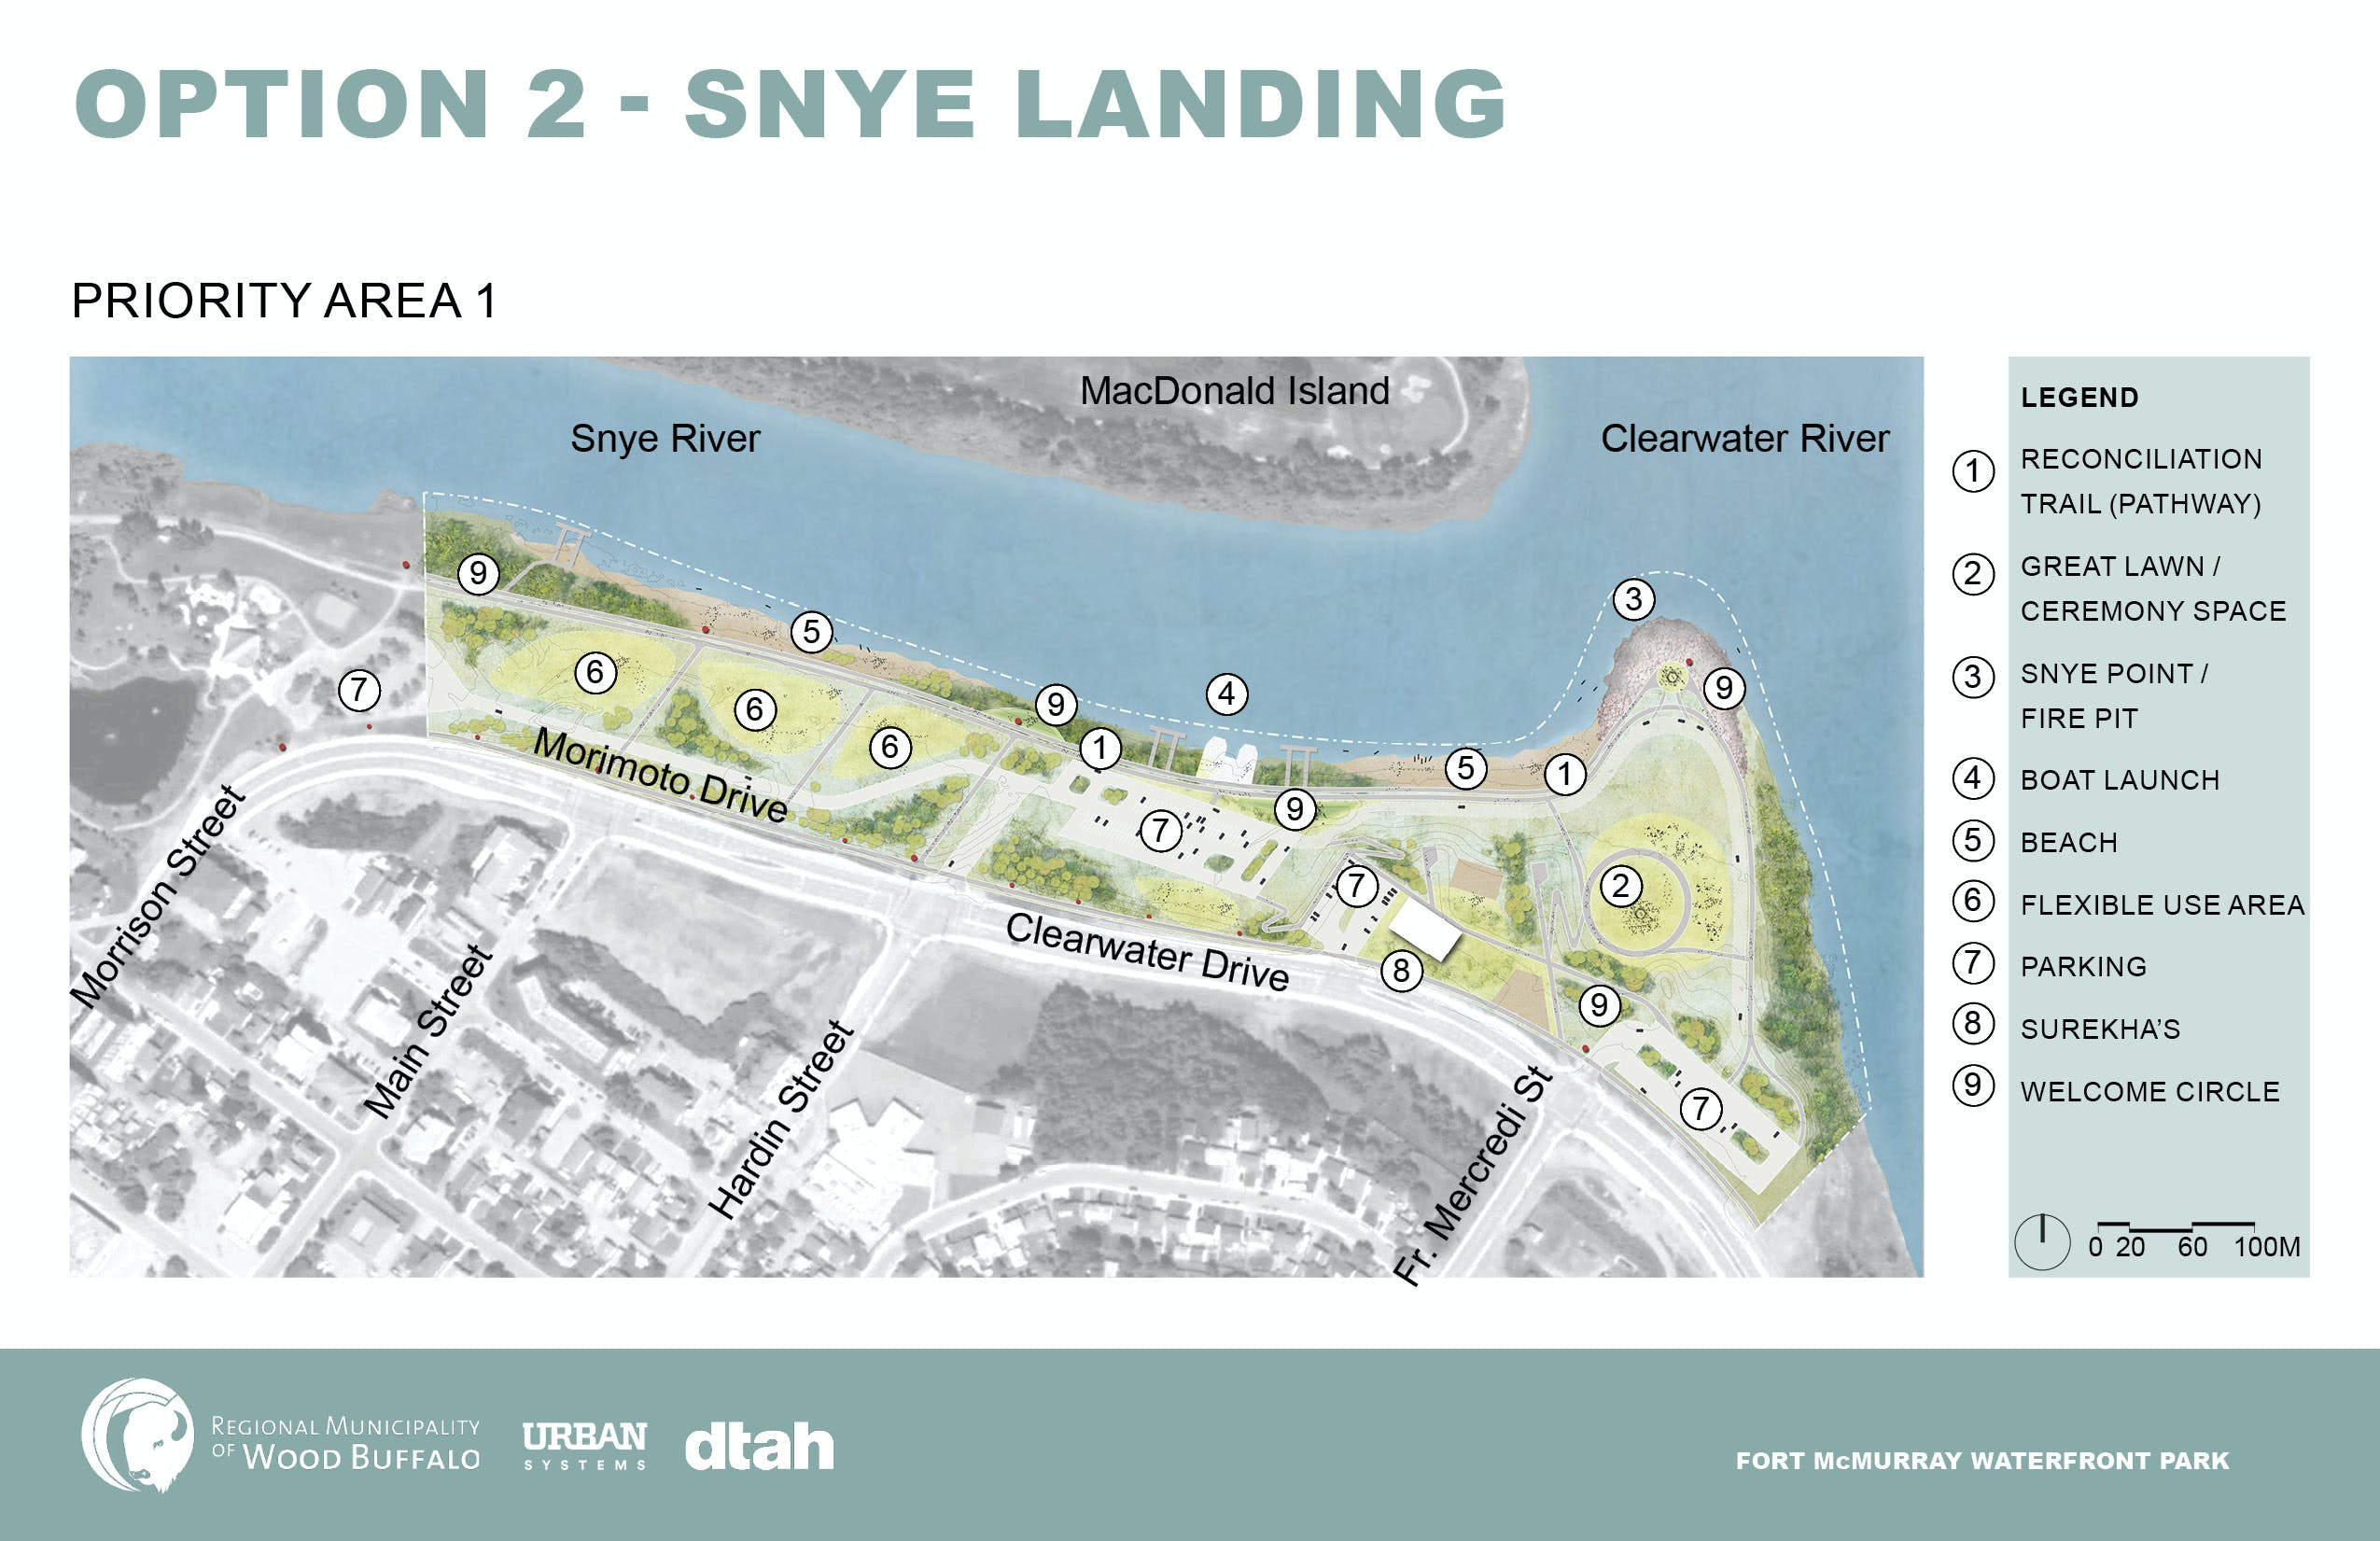 Option 2 - Snye Landing